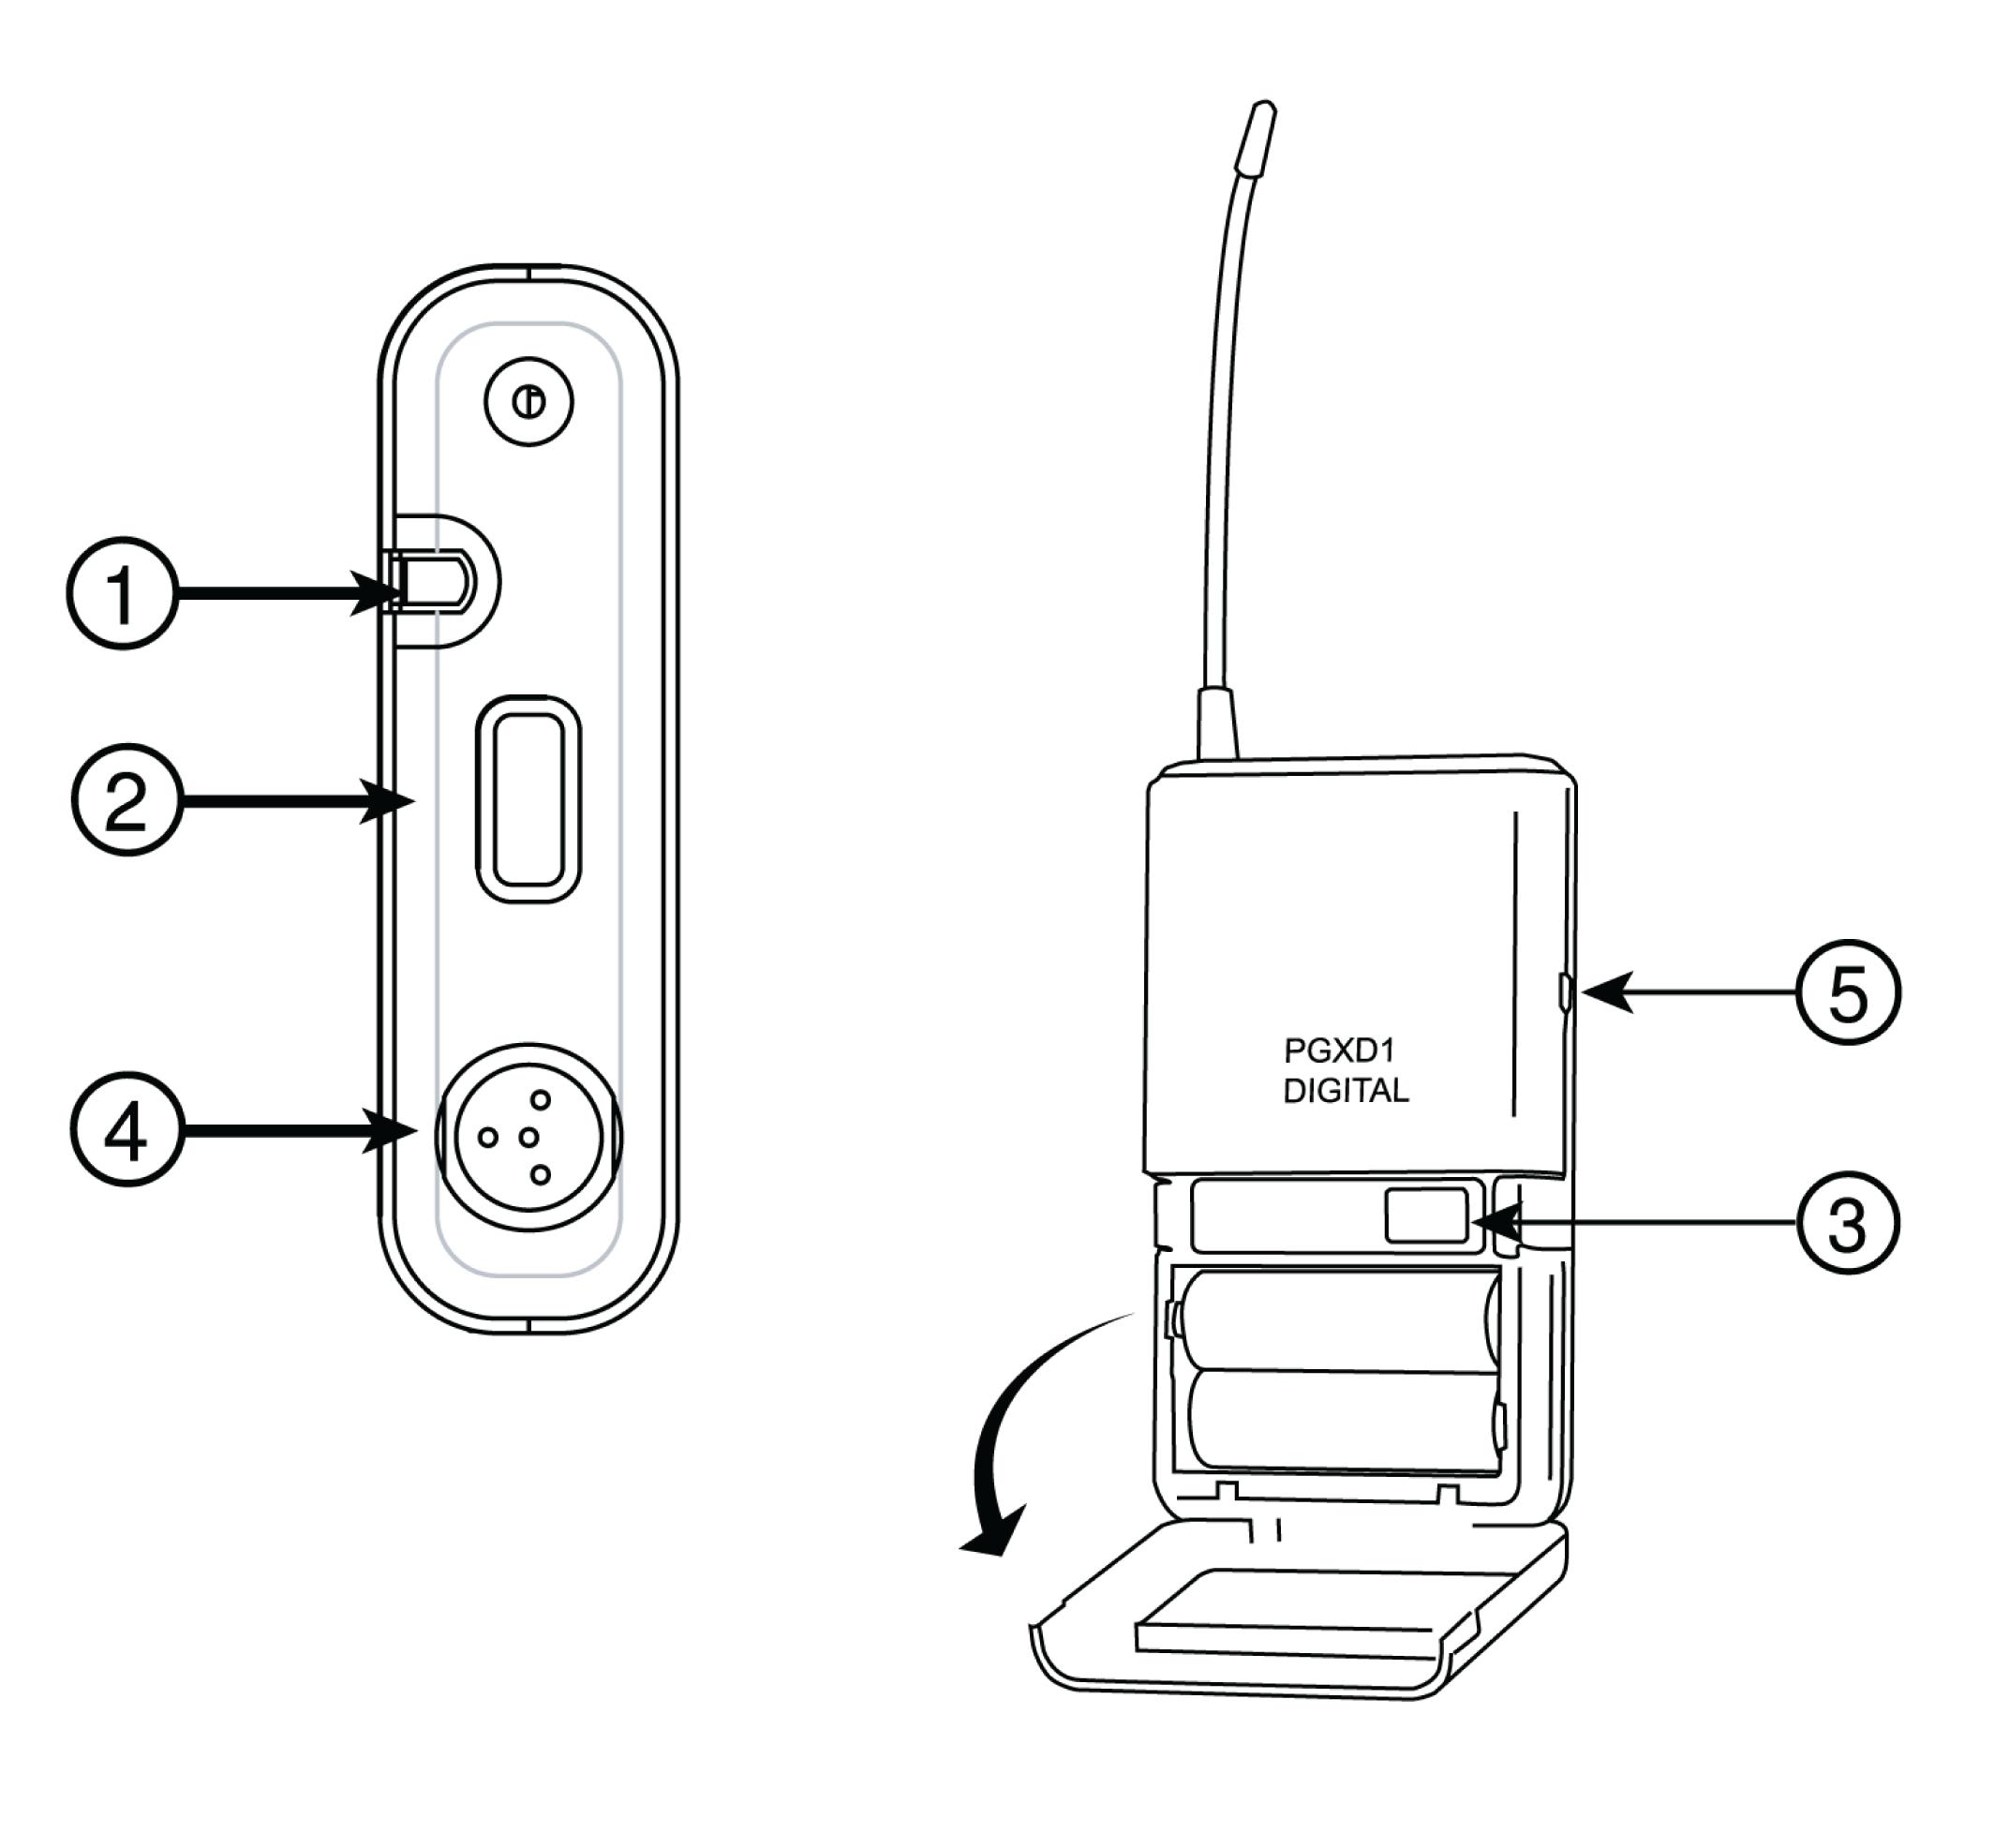 6 Pin Xlr Wiring Diagram